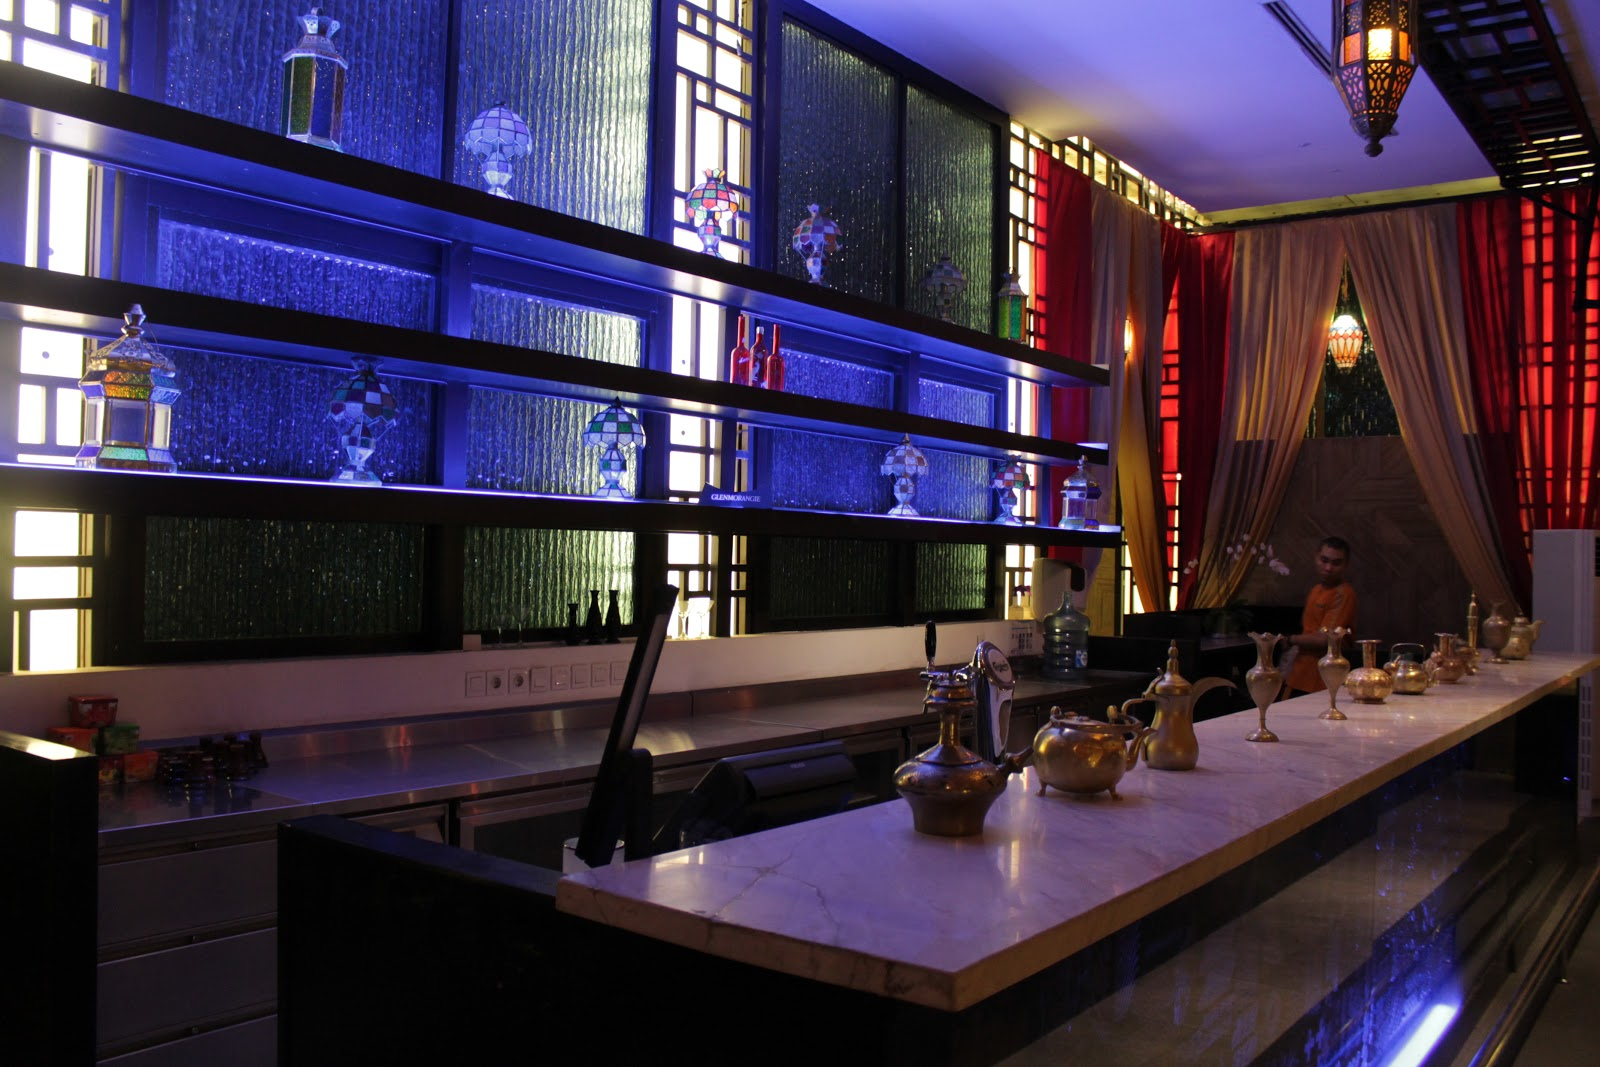 Möbel Shisha Bar Shisha Cafe Decoration Most Widely Used Home Design